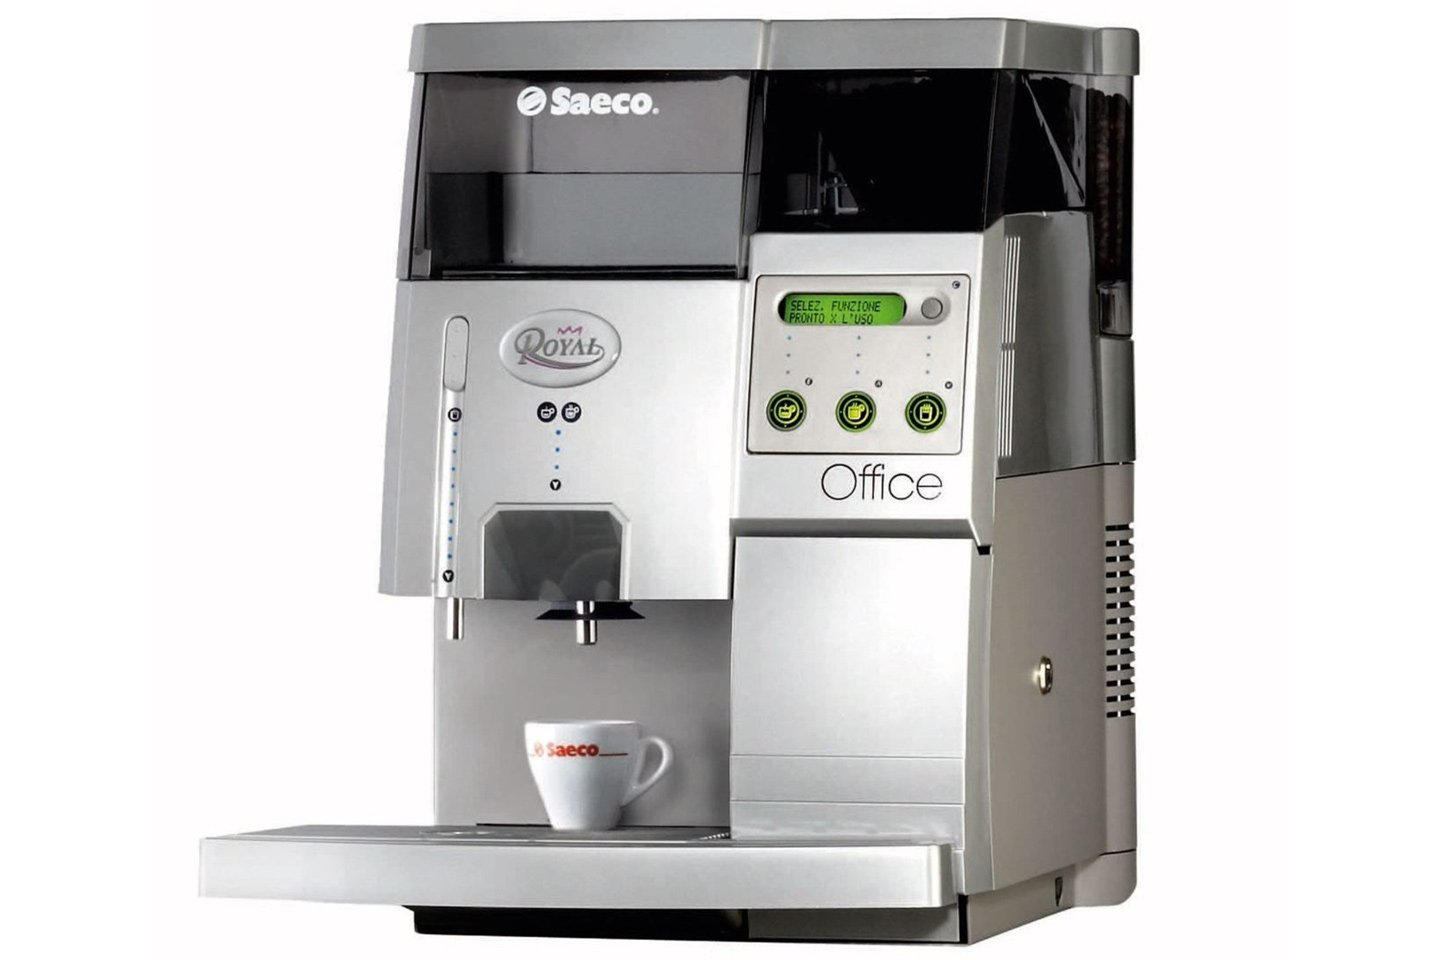 Royal Office 220v Locacao Locafe